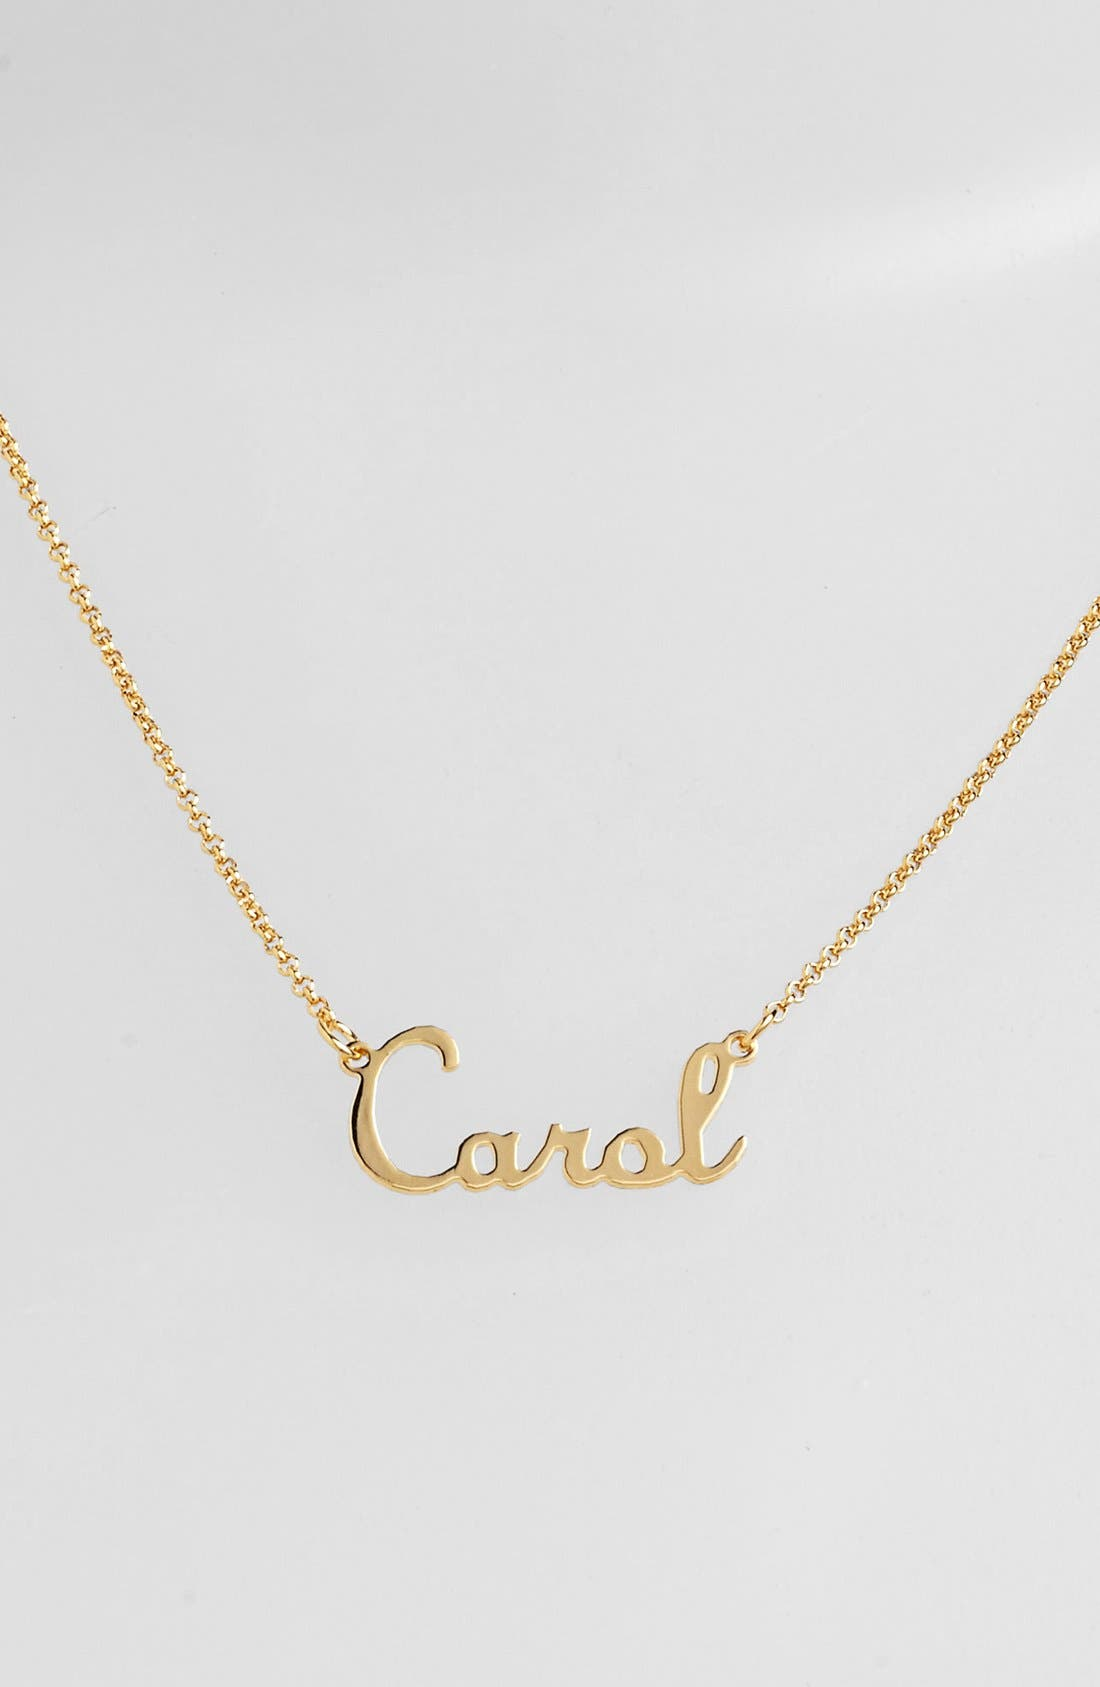 Personalized Script Name with Cross Necklace,                         Main,                         color, GOLD